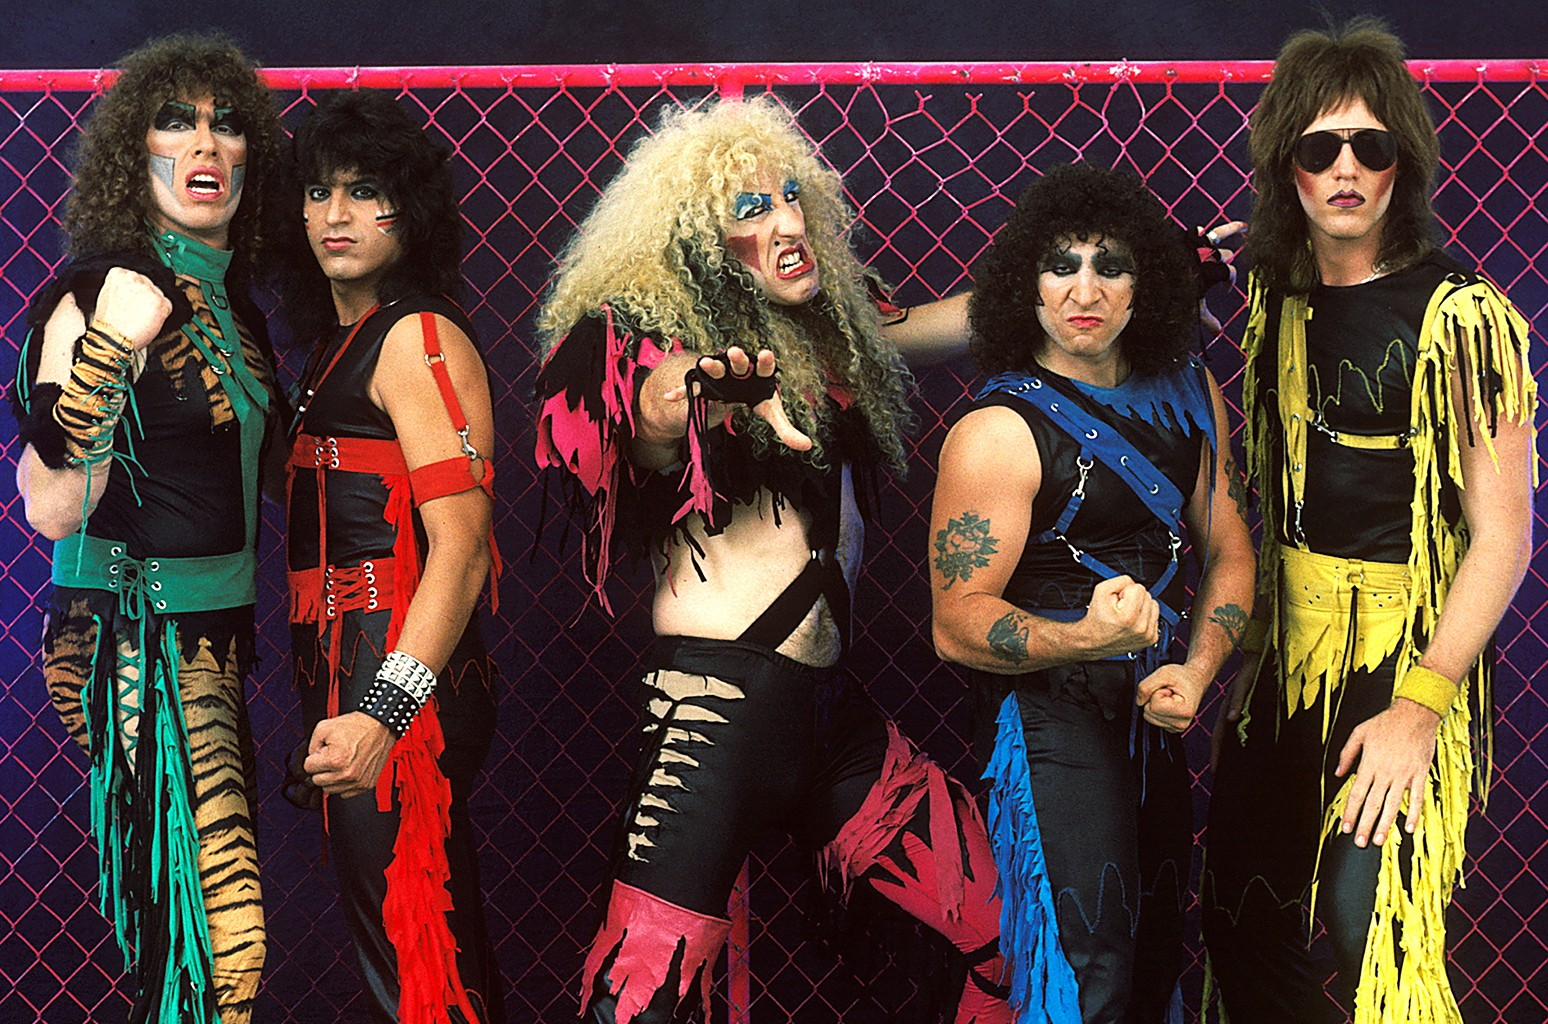 Twisted Sister photographed in 1984